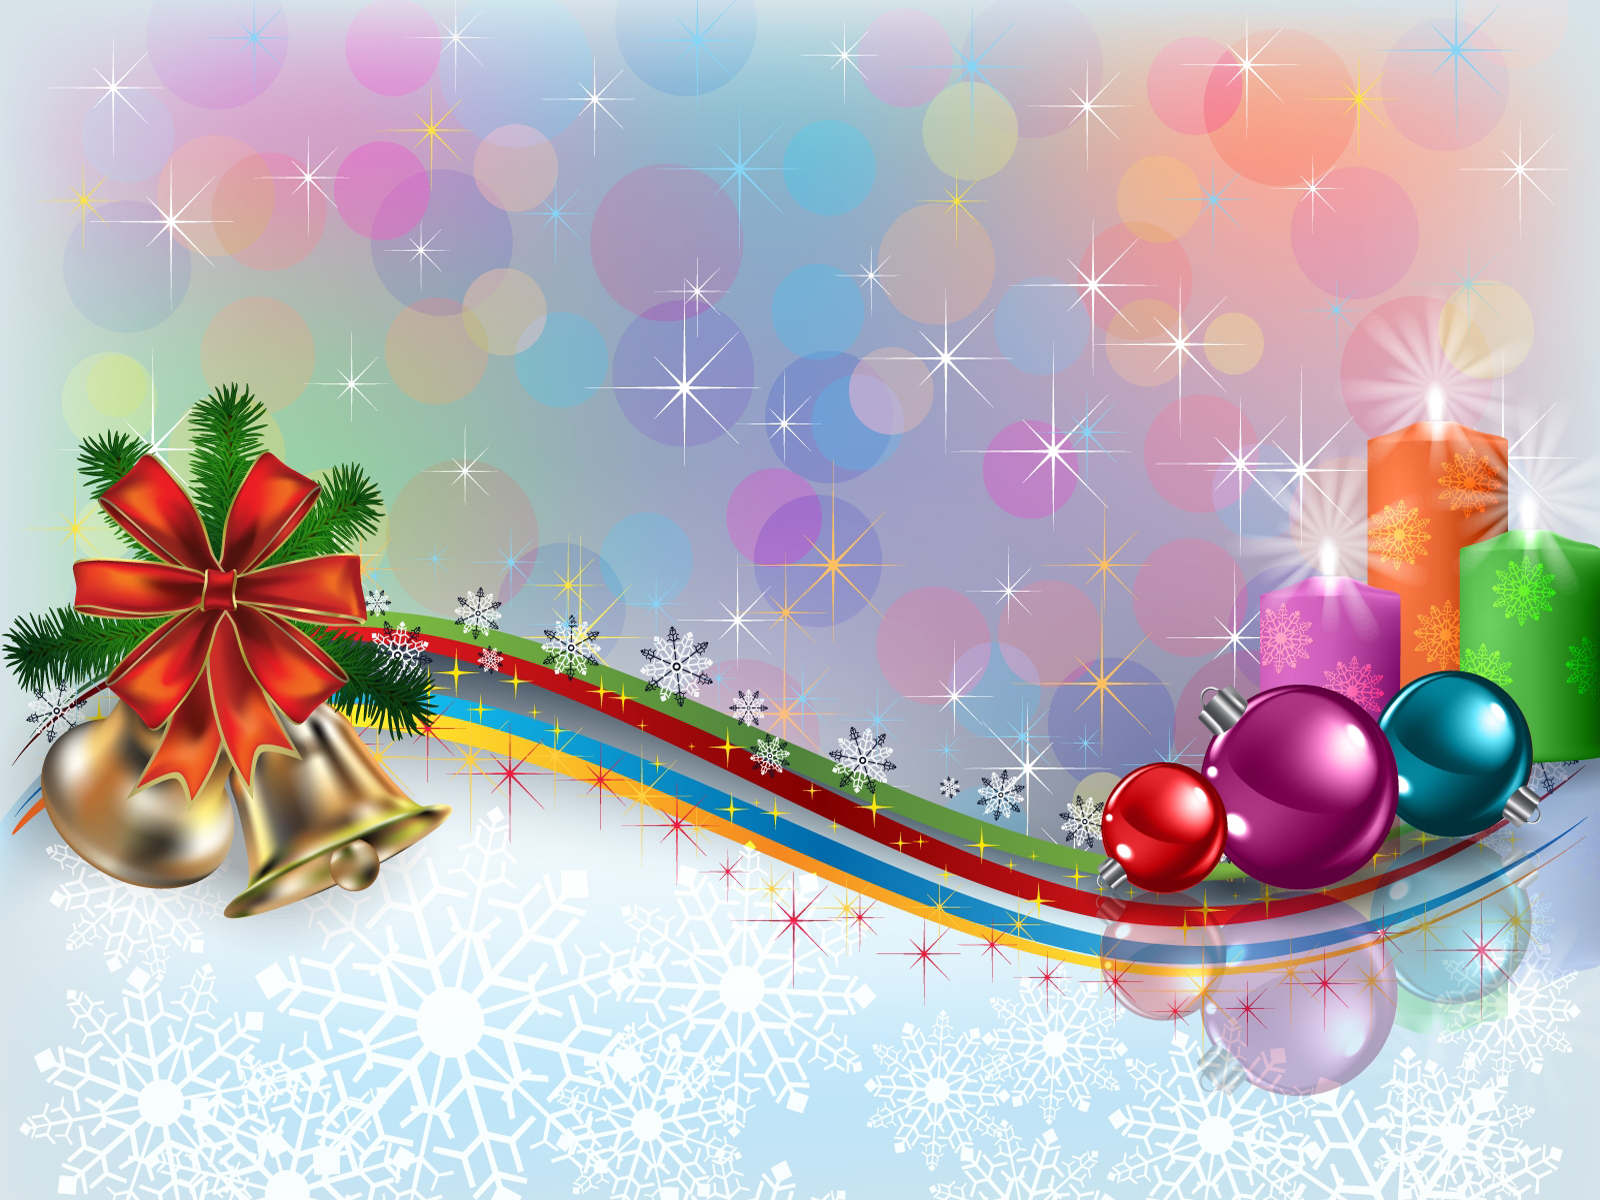 78] Christmas Desktop Wallpapers on WallpaperSafari 1600x1200